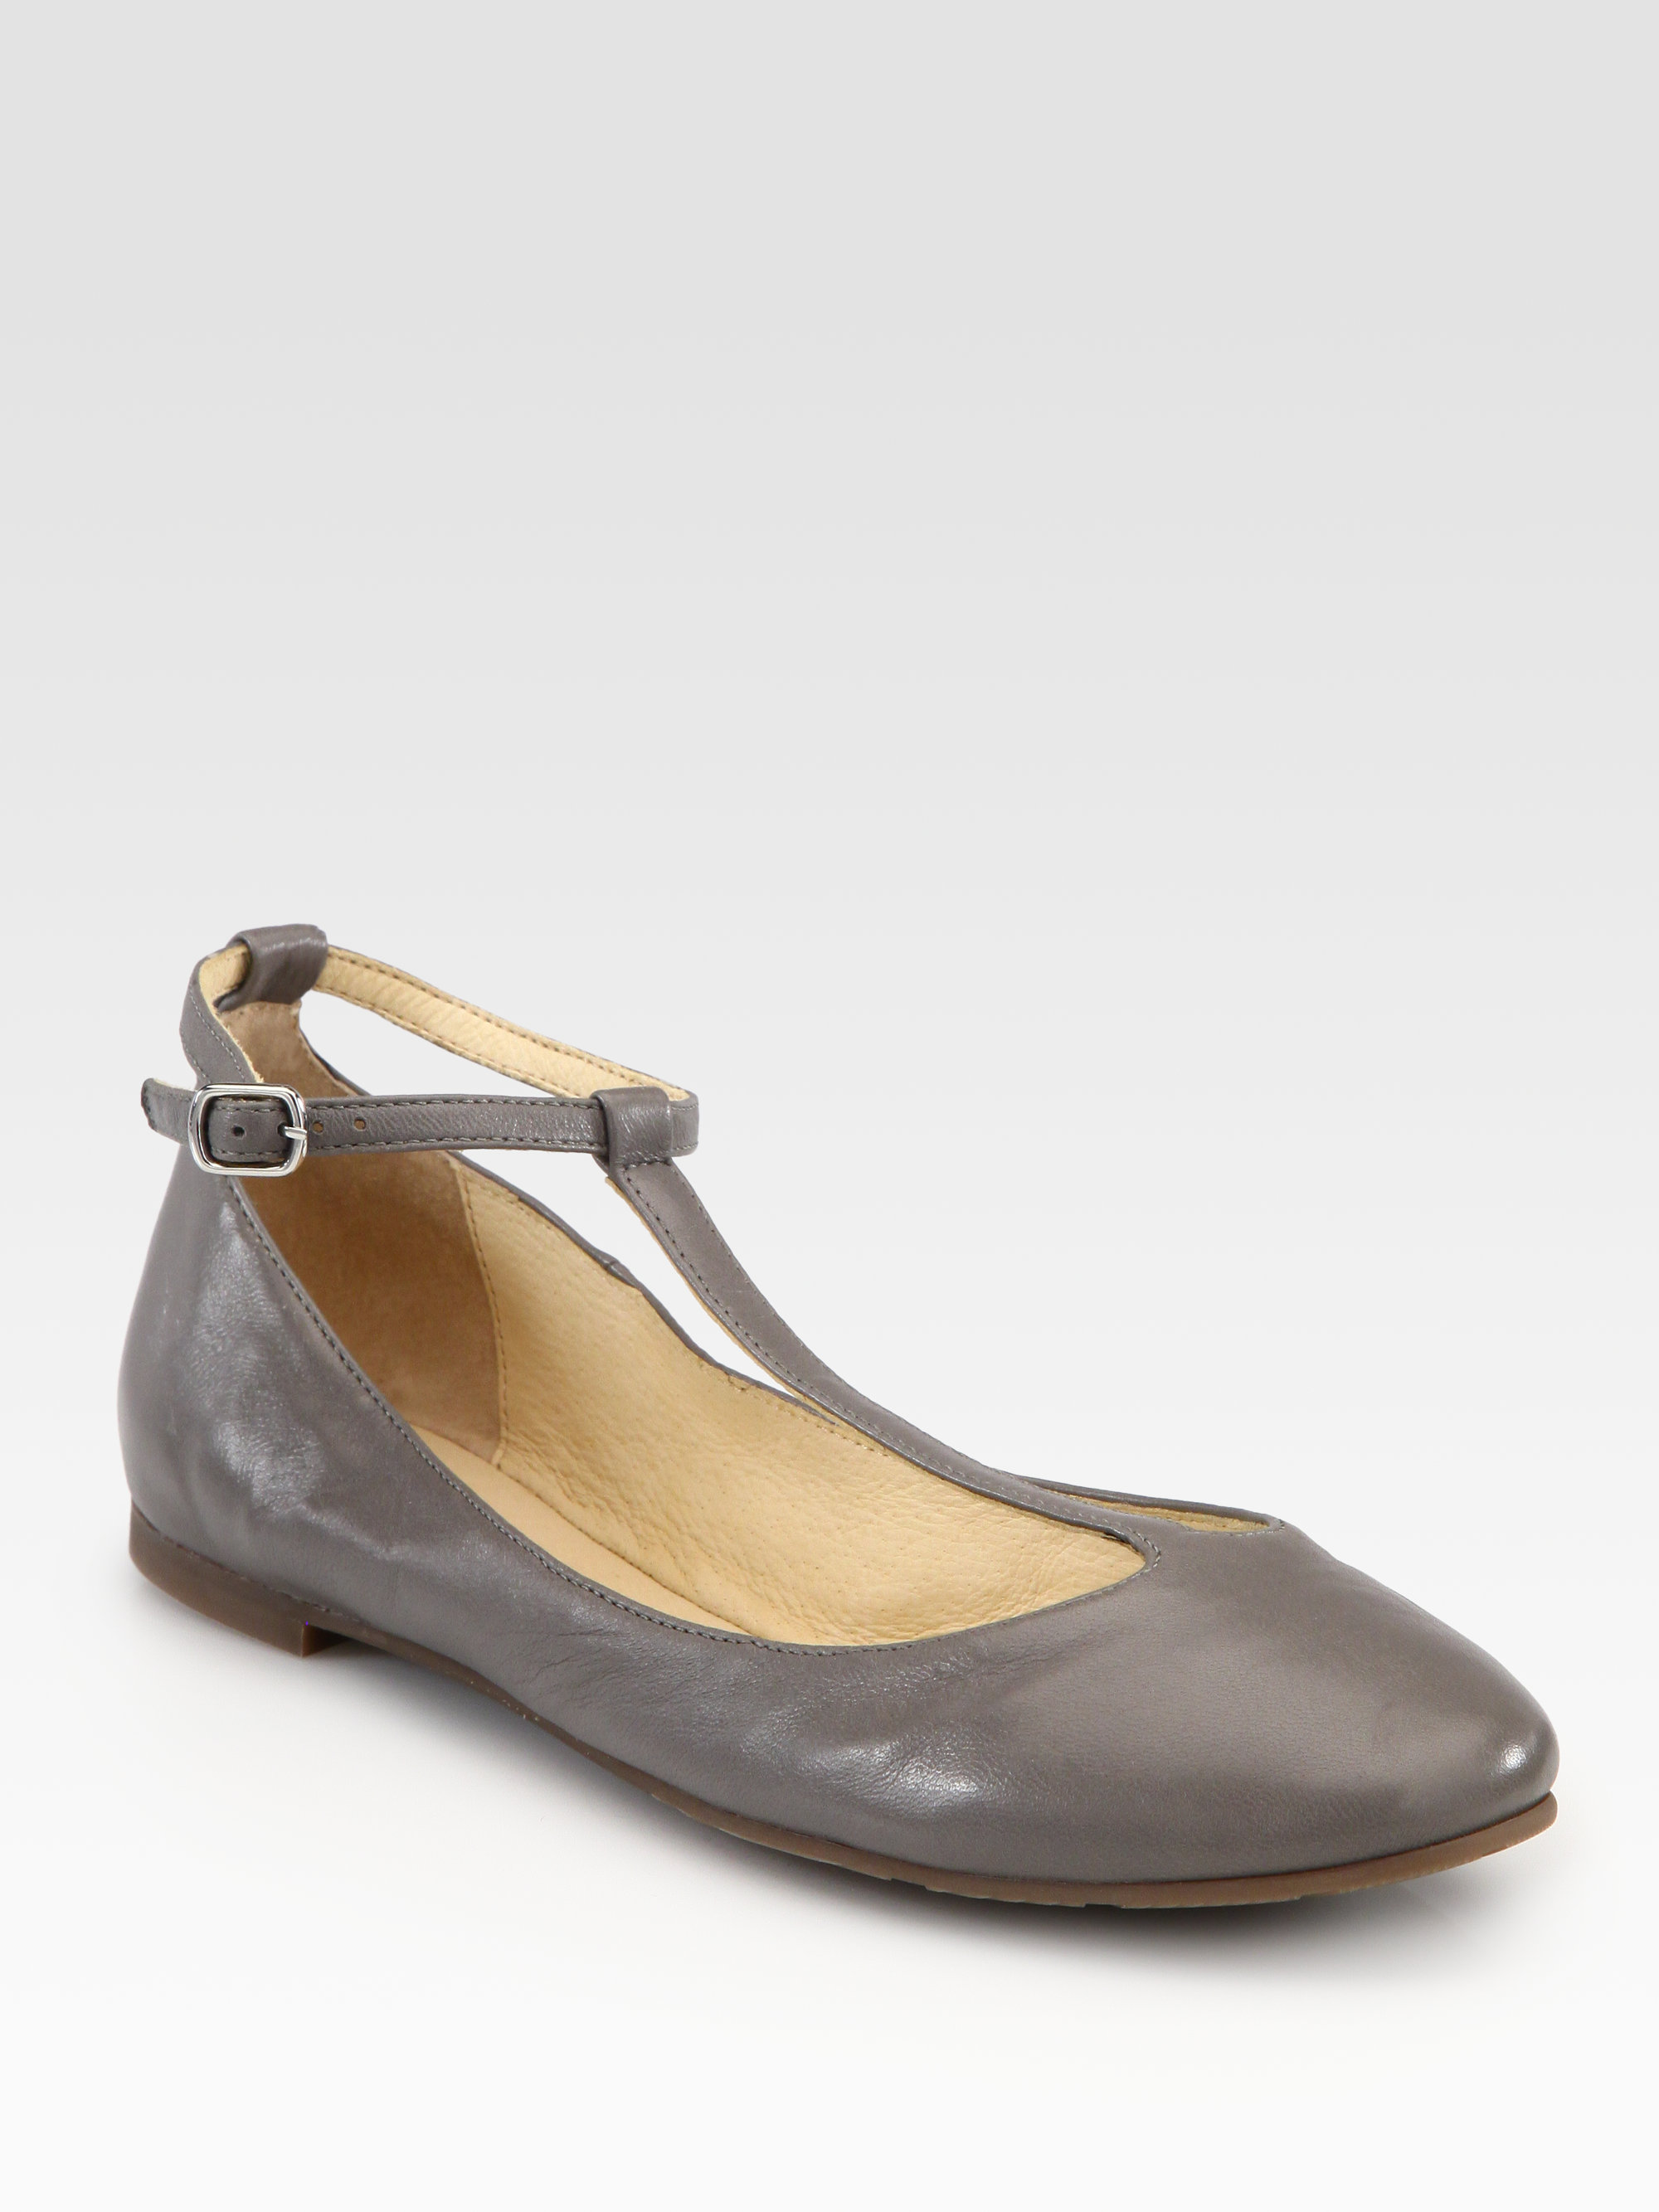 fe77592d1 See By Chloé Leather Tstrap Mary Jane Ballet Flats in Black - Lyst